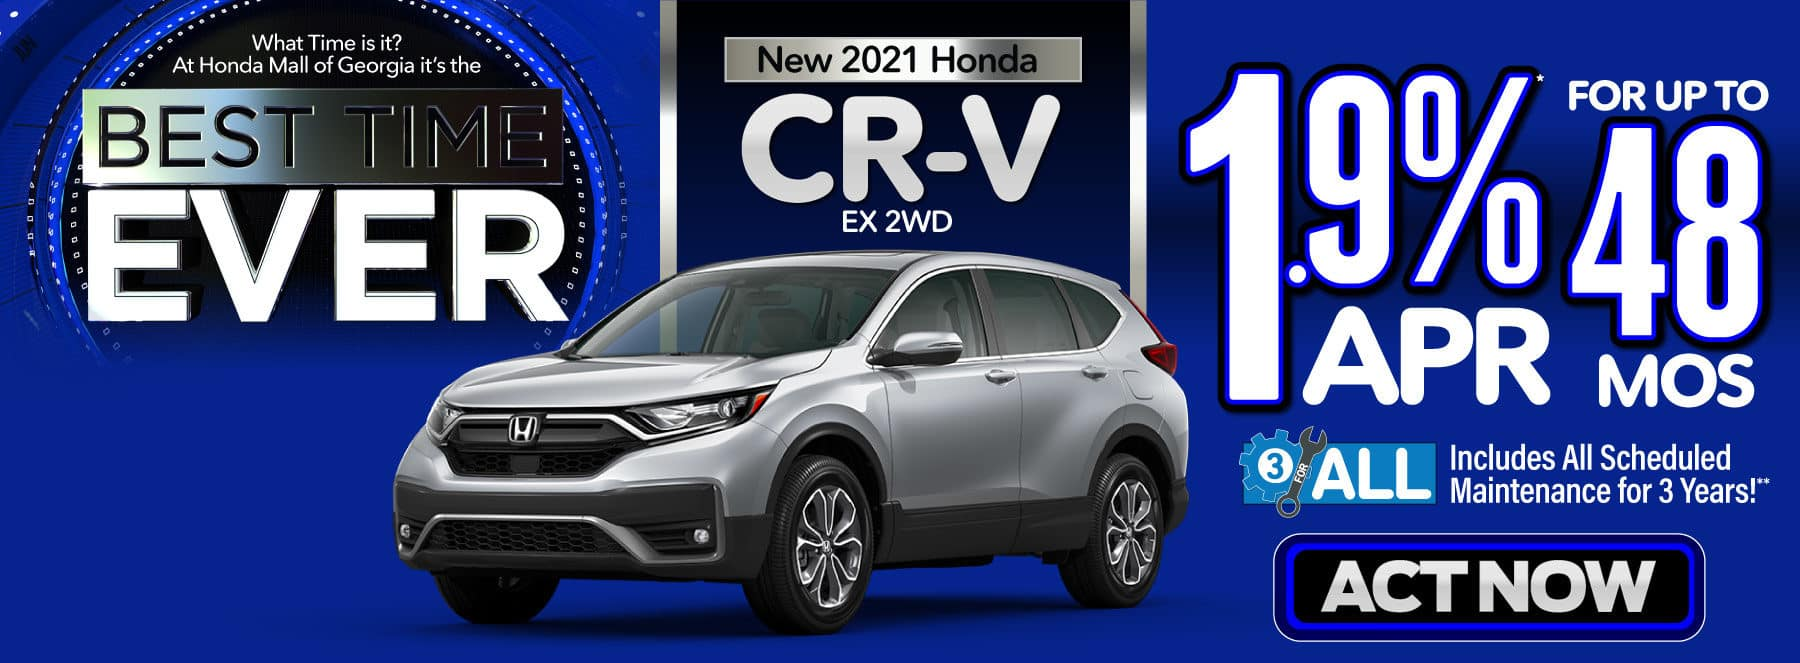 New 2021 Honda CR-V - 1.9% APR for up to 48 months - Act Now